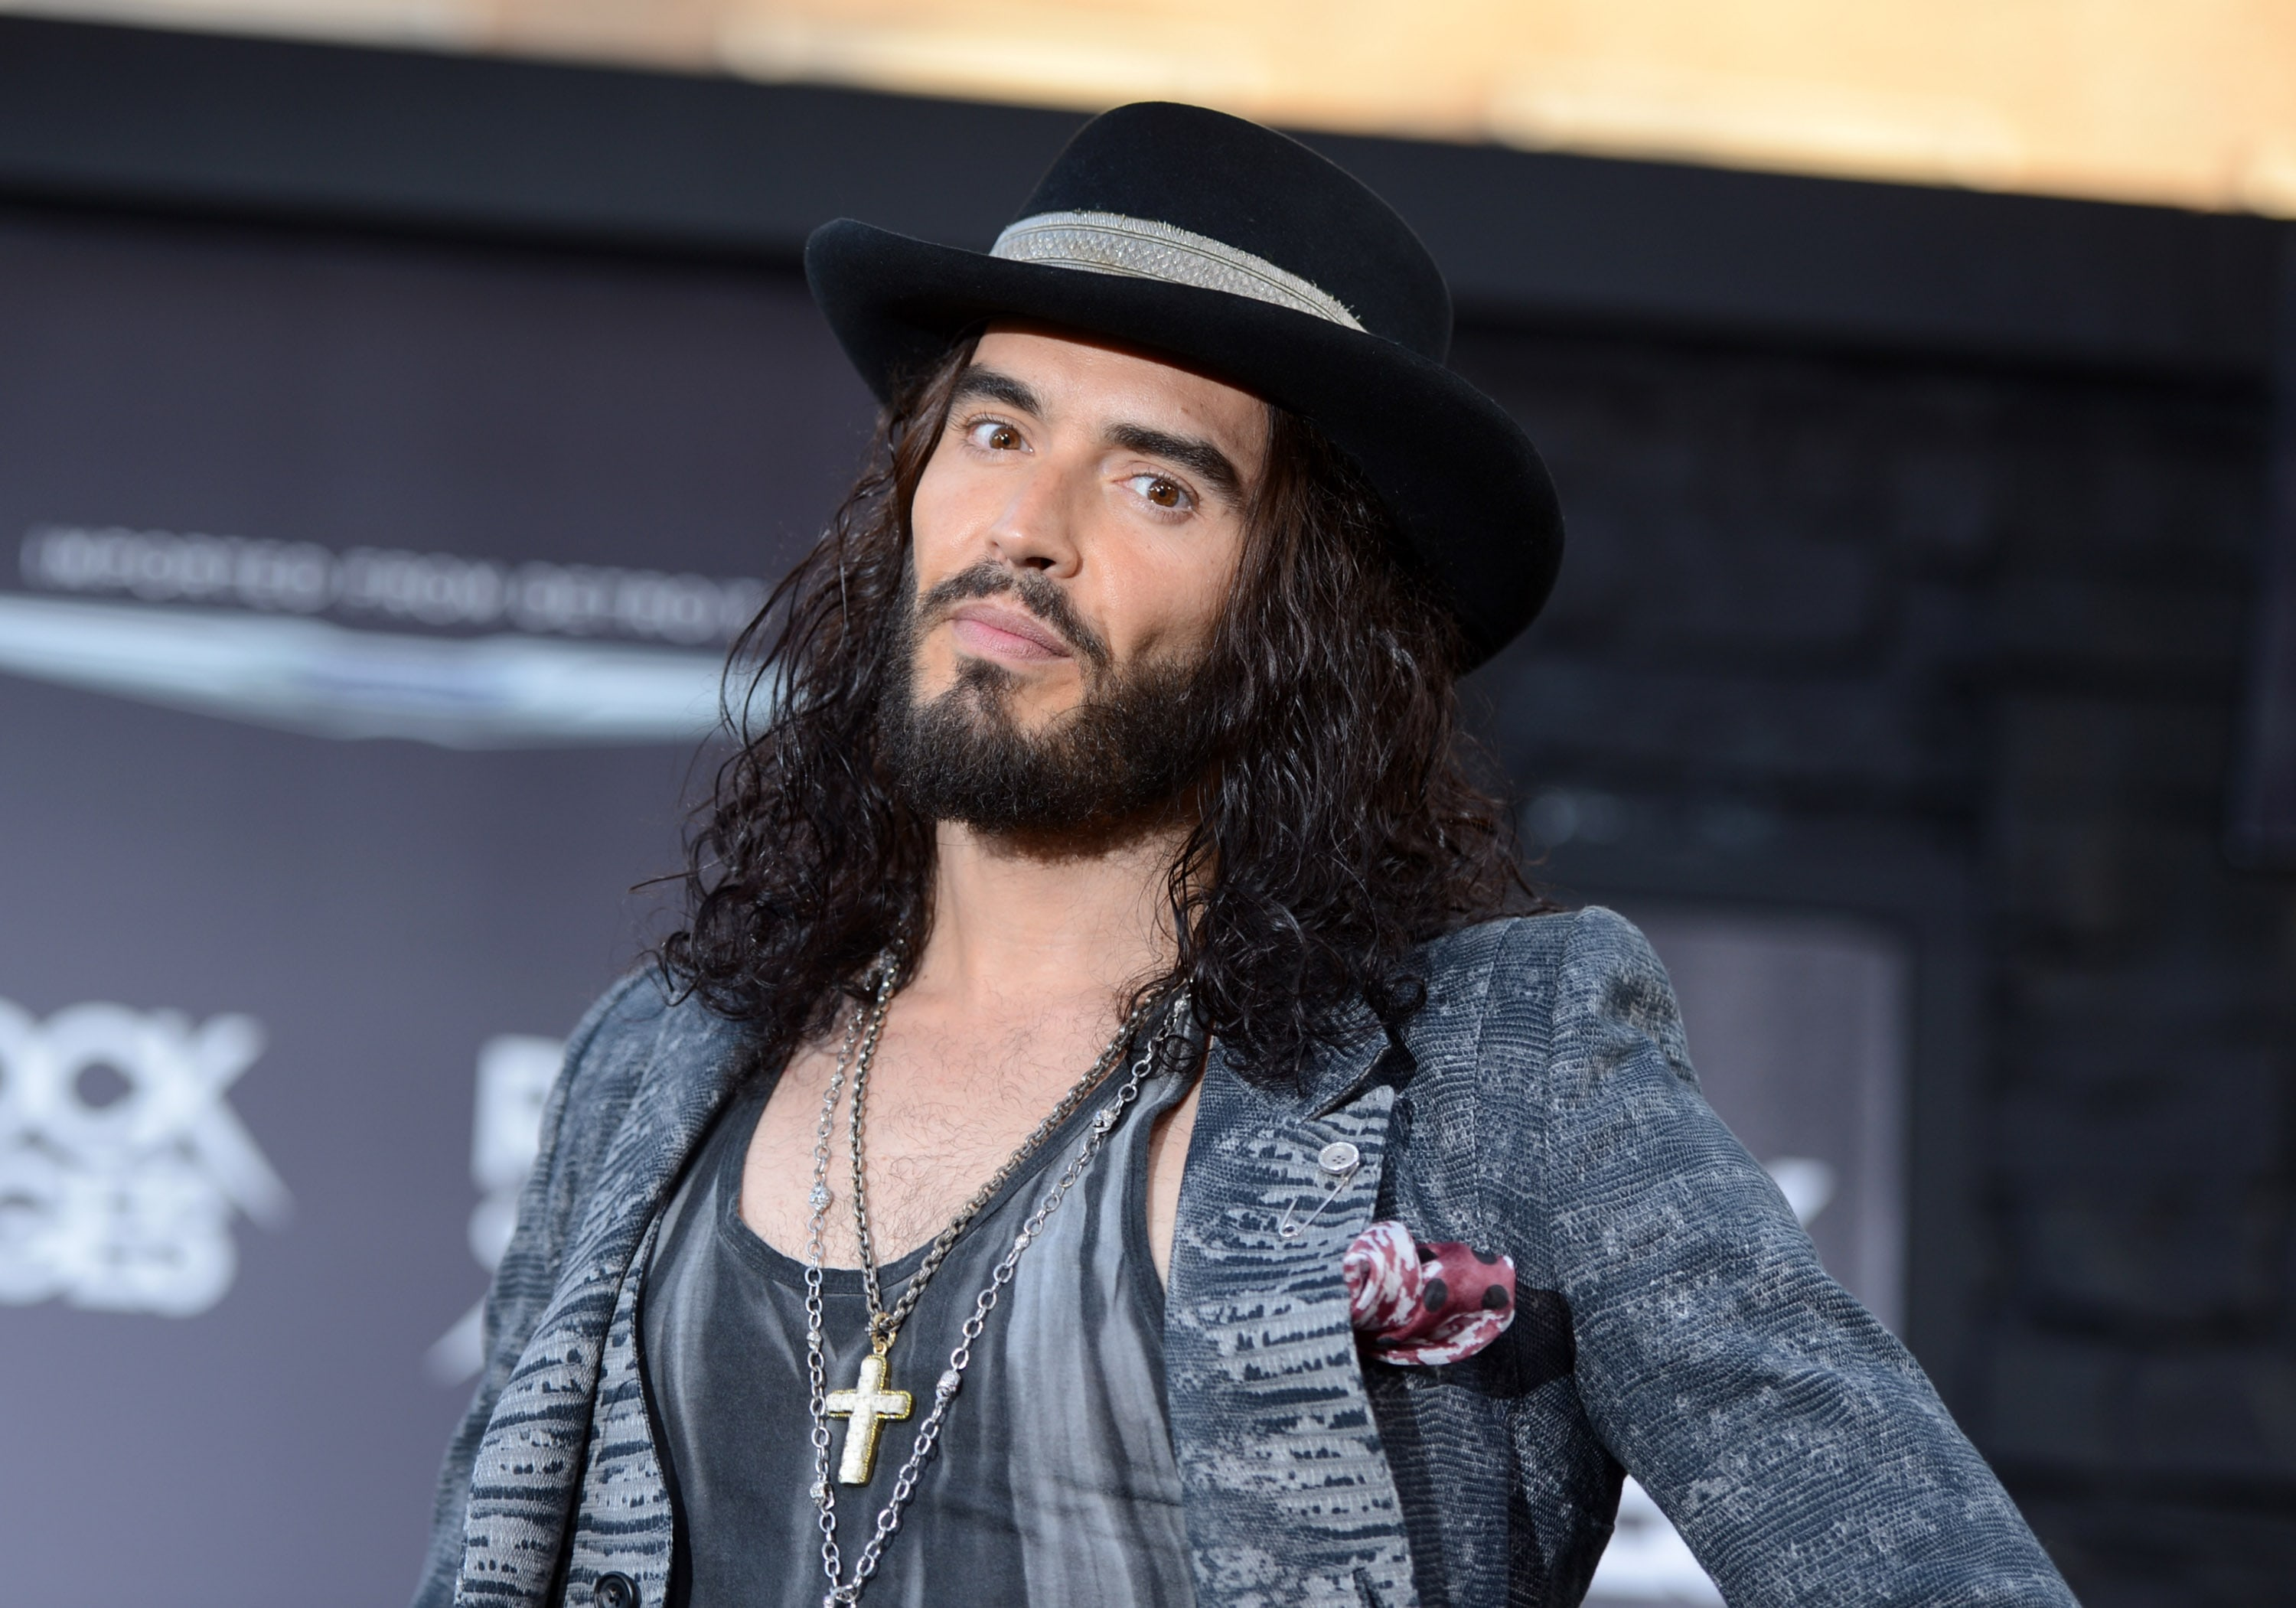 Russell Brand Full hd wallpapers